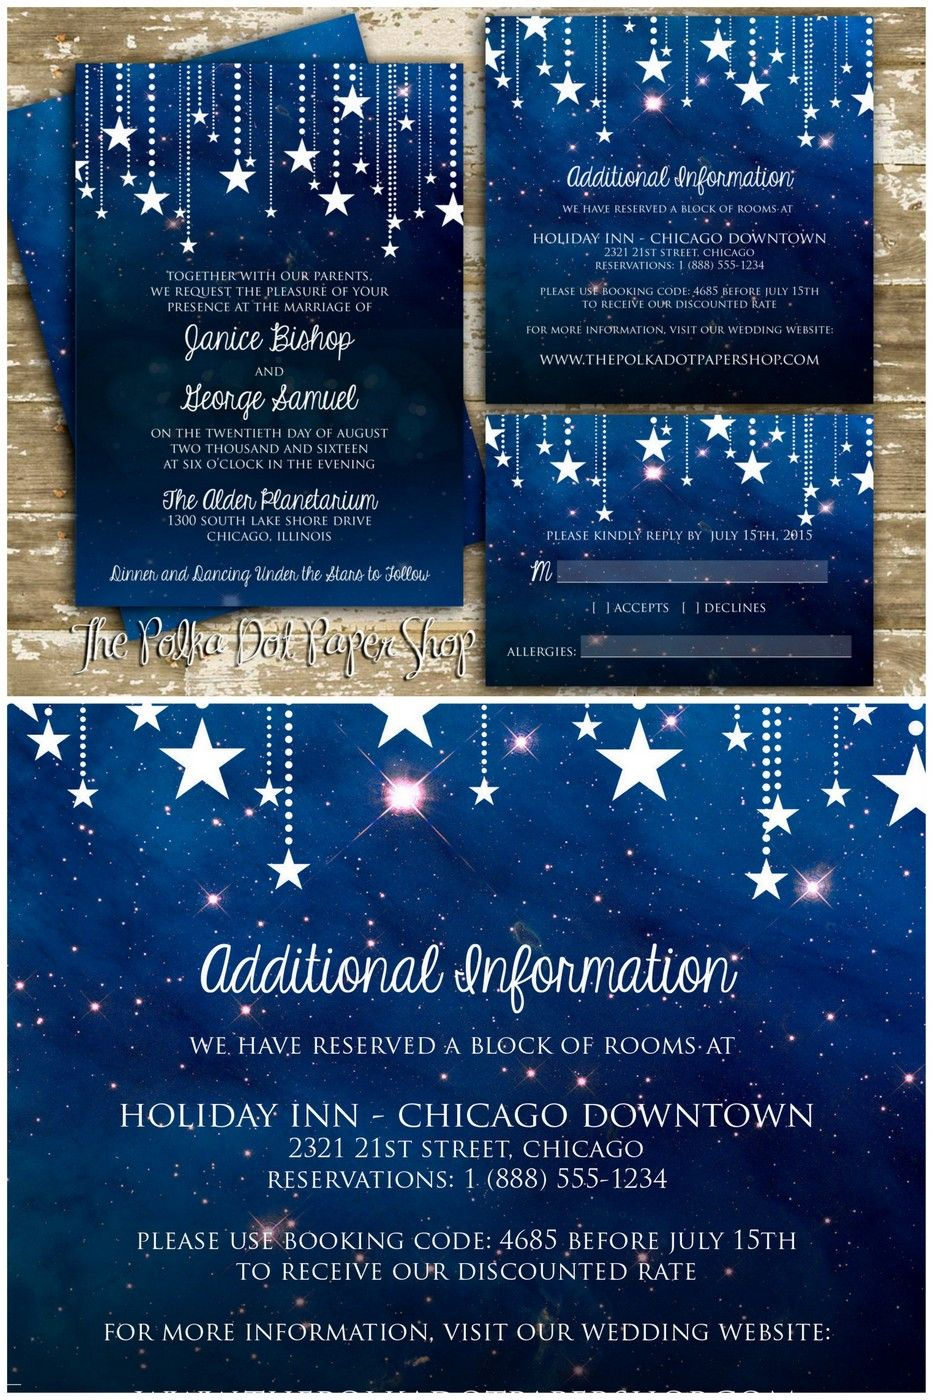 16 Starry Night Celestial Wedding Invitations To Light Up Your Life Celestial Wedding Invitations Wedding Invitations Fun Wedding Invitations